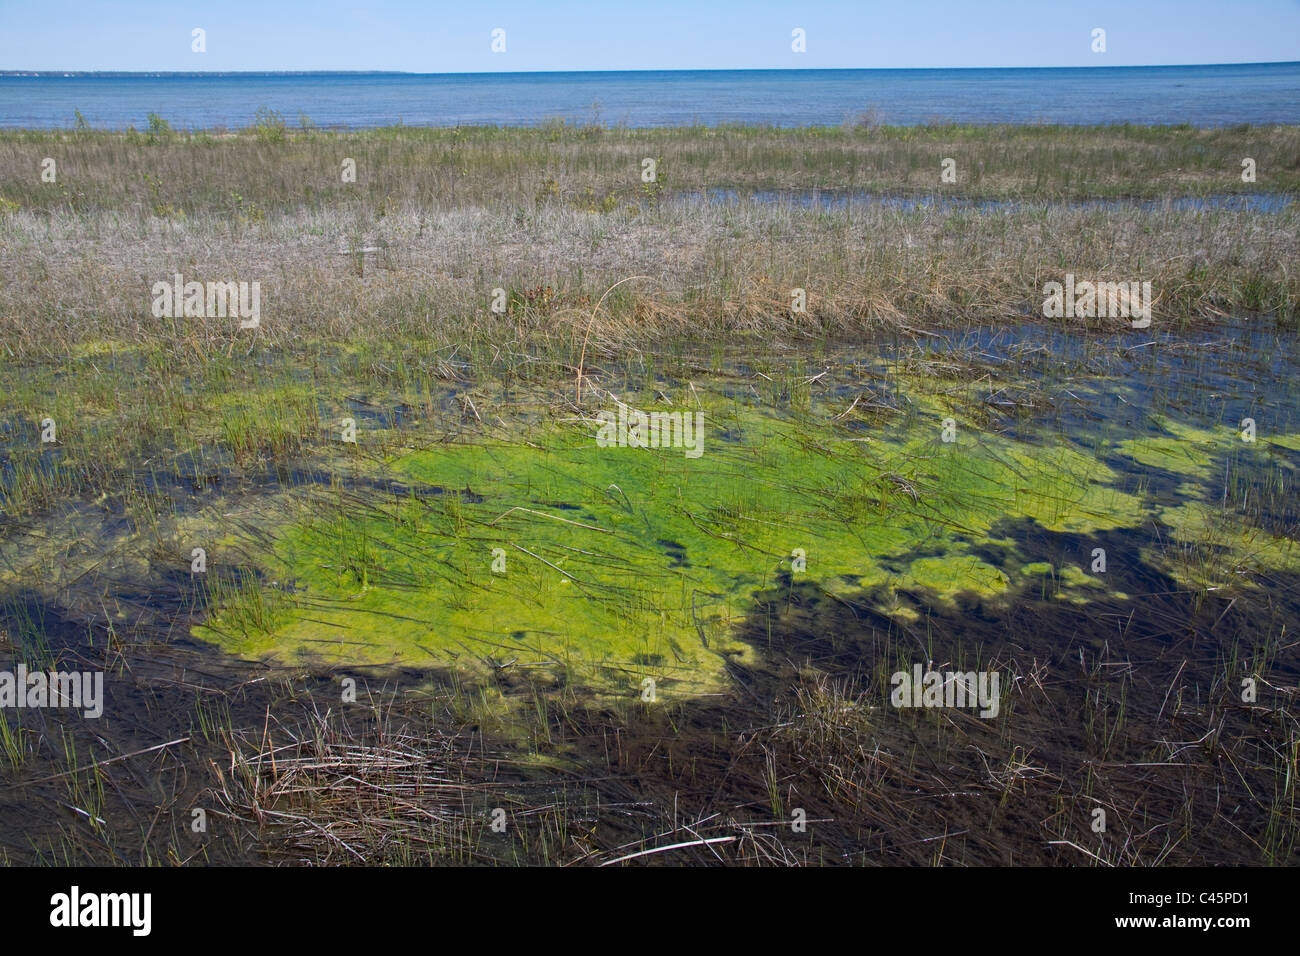 Small Freshwater lagoon with Blue-Green algae or Blue-Green bacteria (Cyanophyta ) near Lake Huron Michigan USA Stock Photo